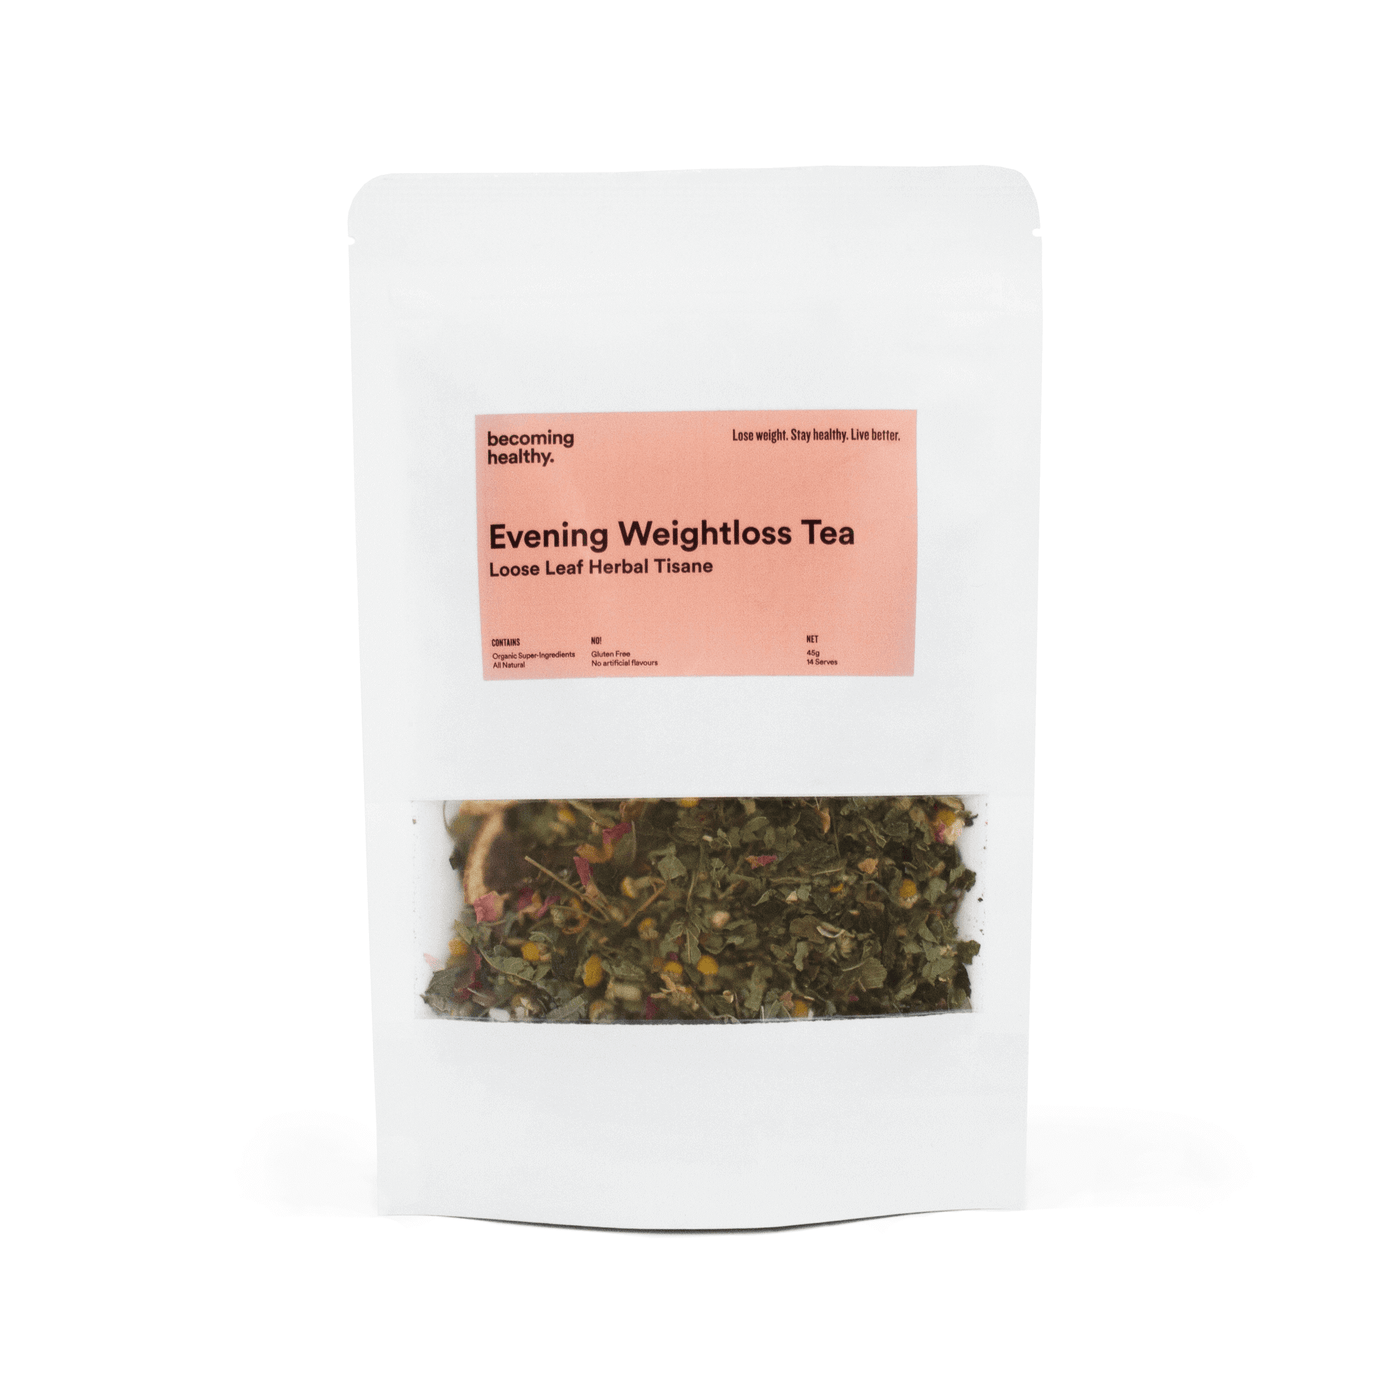 Evening Blend - Weight Loss Tea - Becoming Healthy